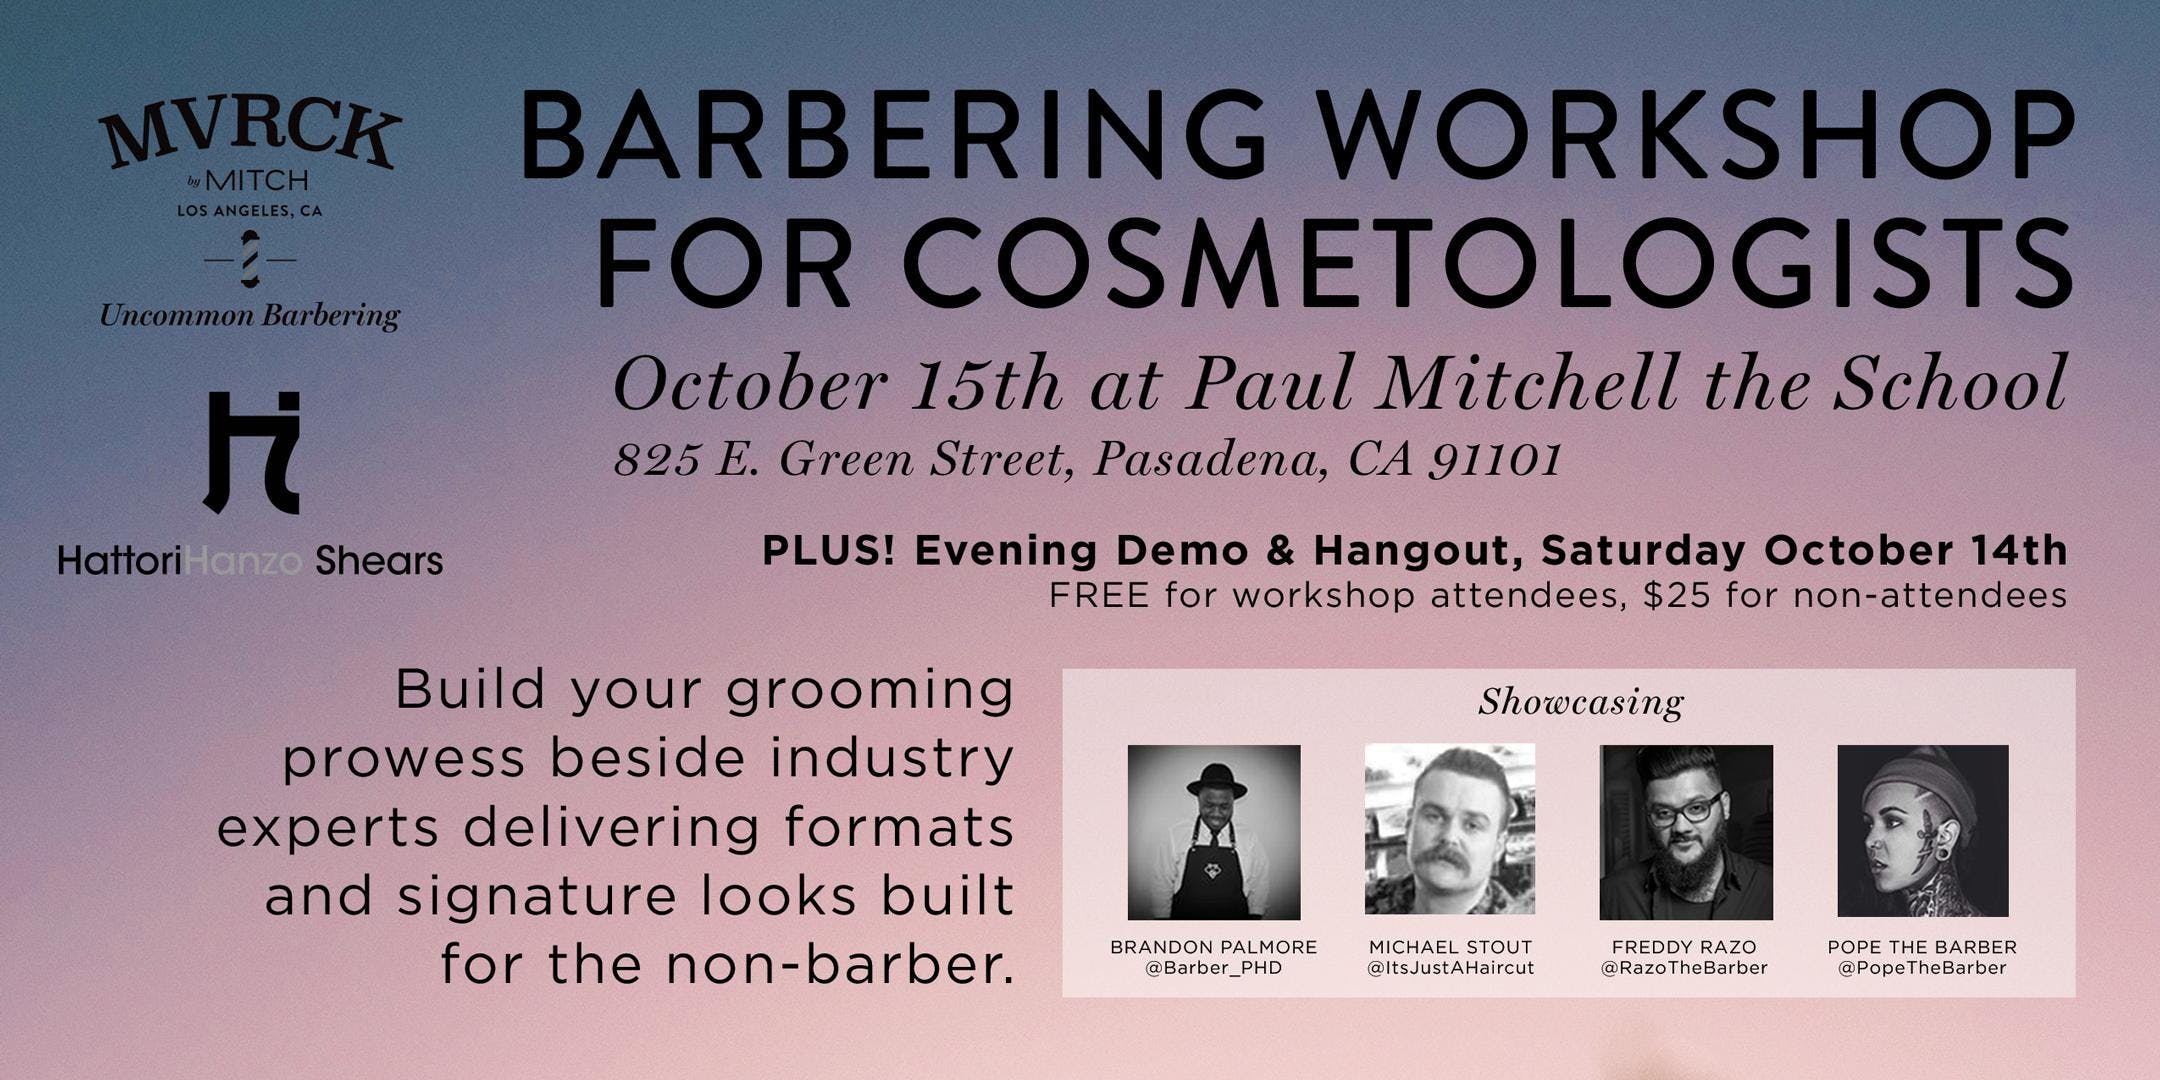 Barbering Workshop For Cosmetologists 15 Oct 2018